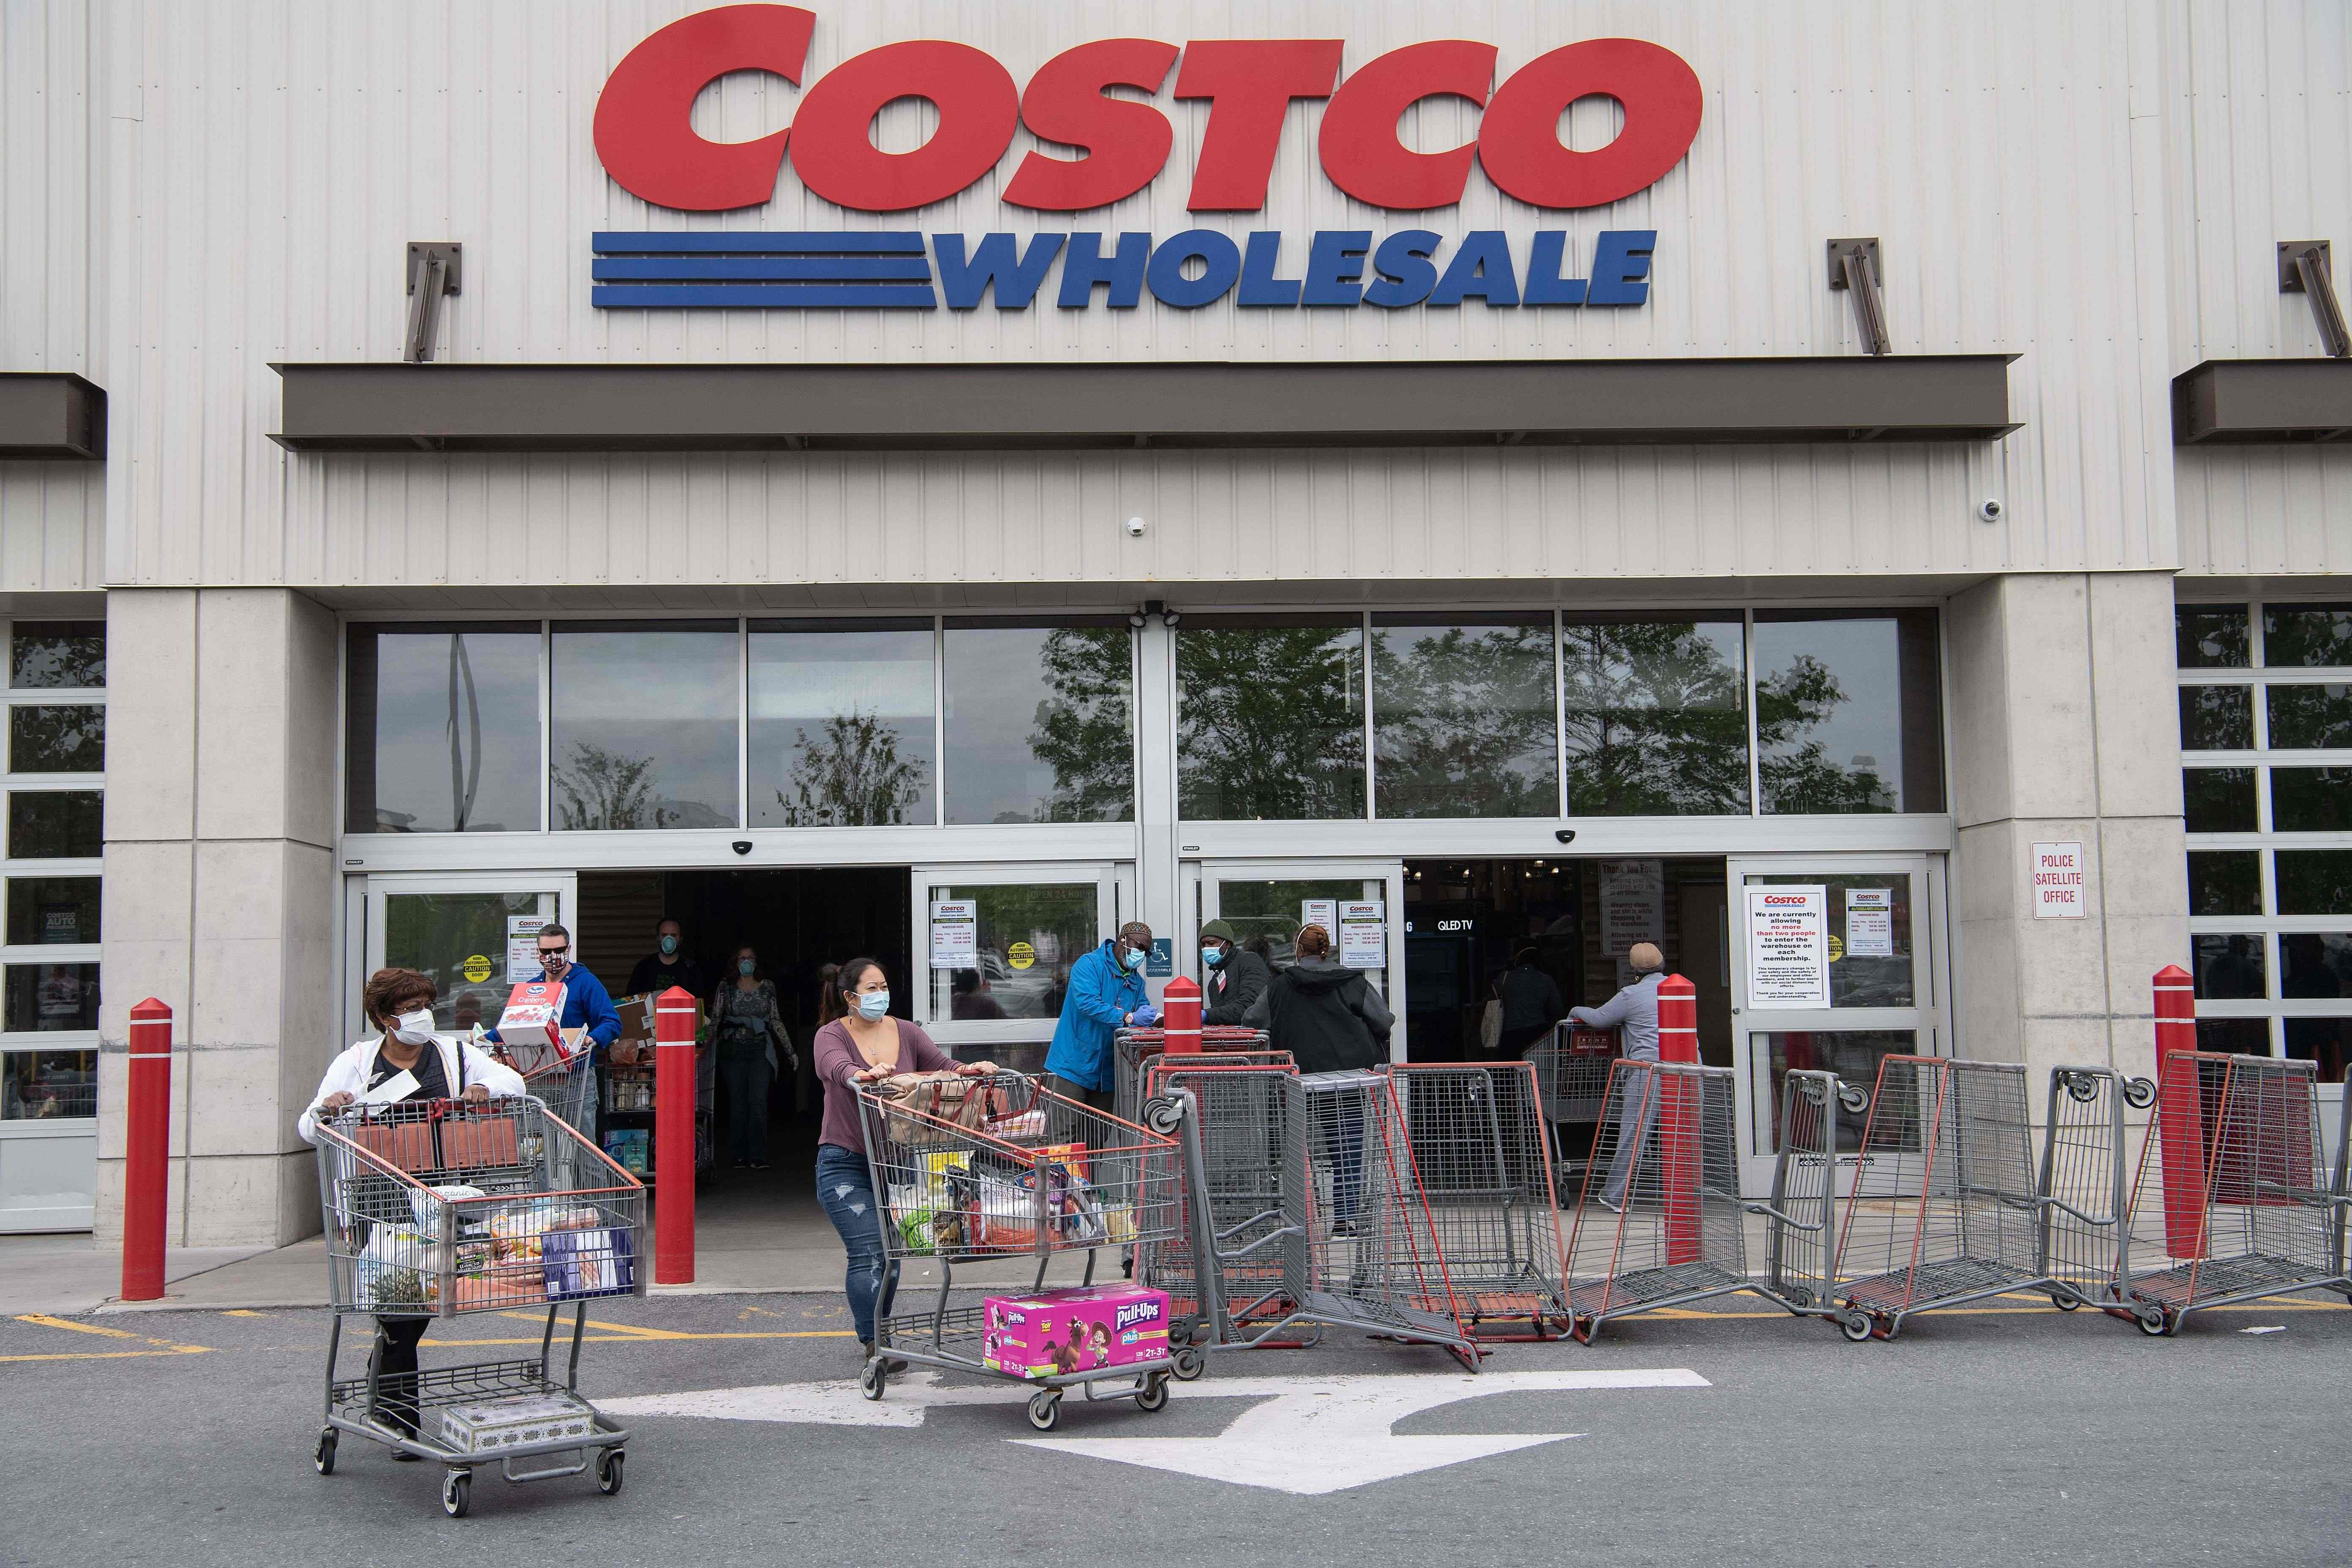 Costco senior hours update: Several clubs have varying special hours for seniors, most vulnerable amid COVID-19